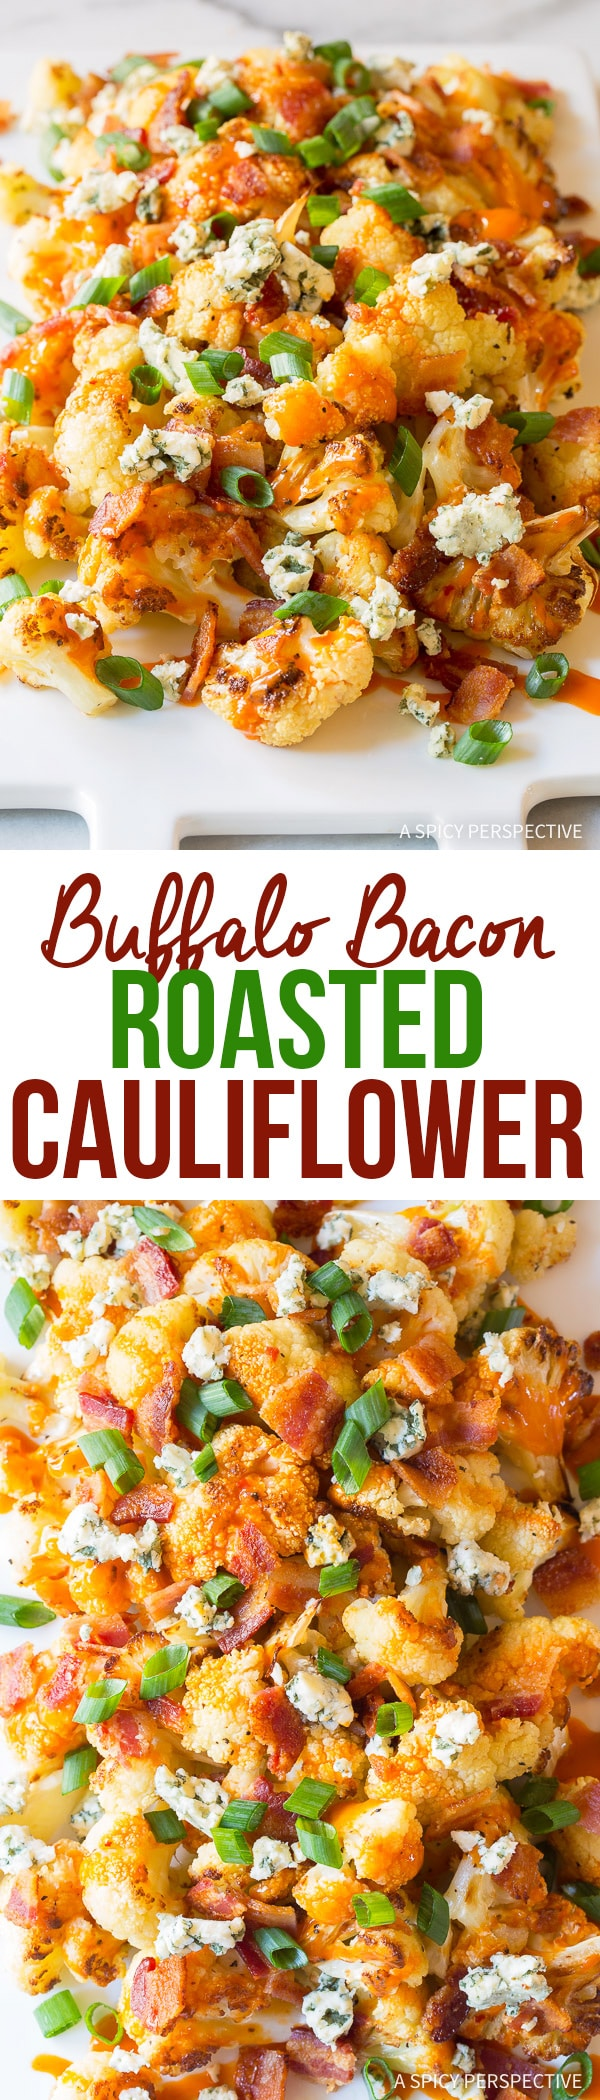 5-Ingredient Buffalo Bacon Roasted Cauliflower Recipe